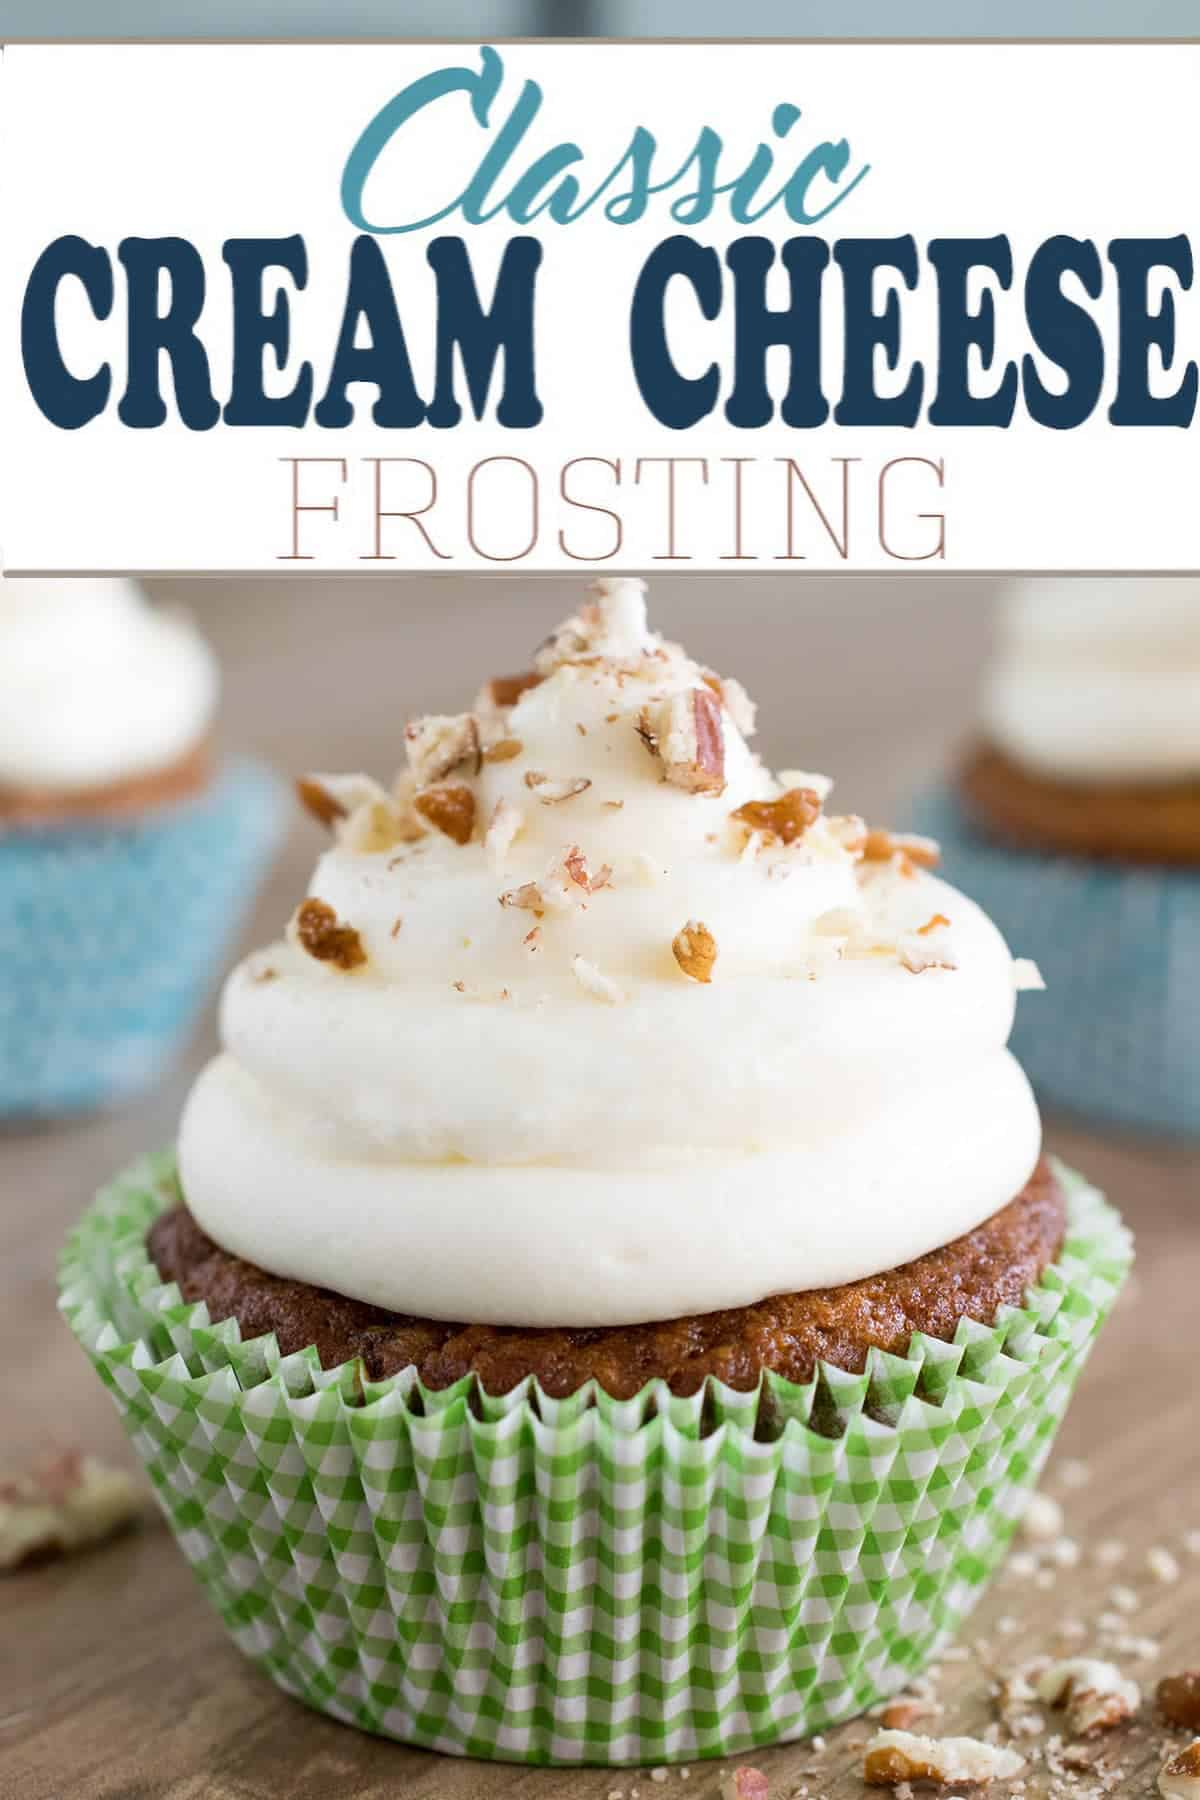 The best carrot cake cupcakes with cream cheese frosting! These cupcakes are moist and filled with carrots, raisins, pineapple, and warmth.